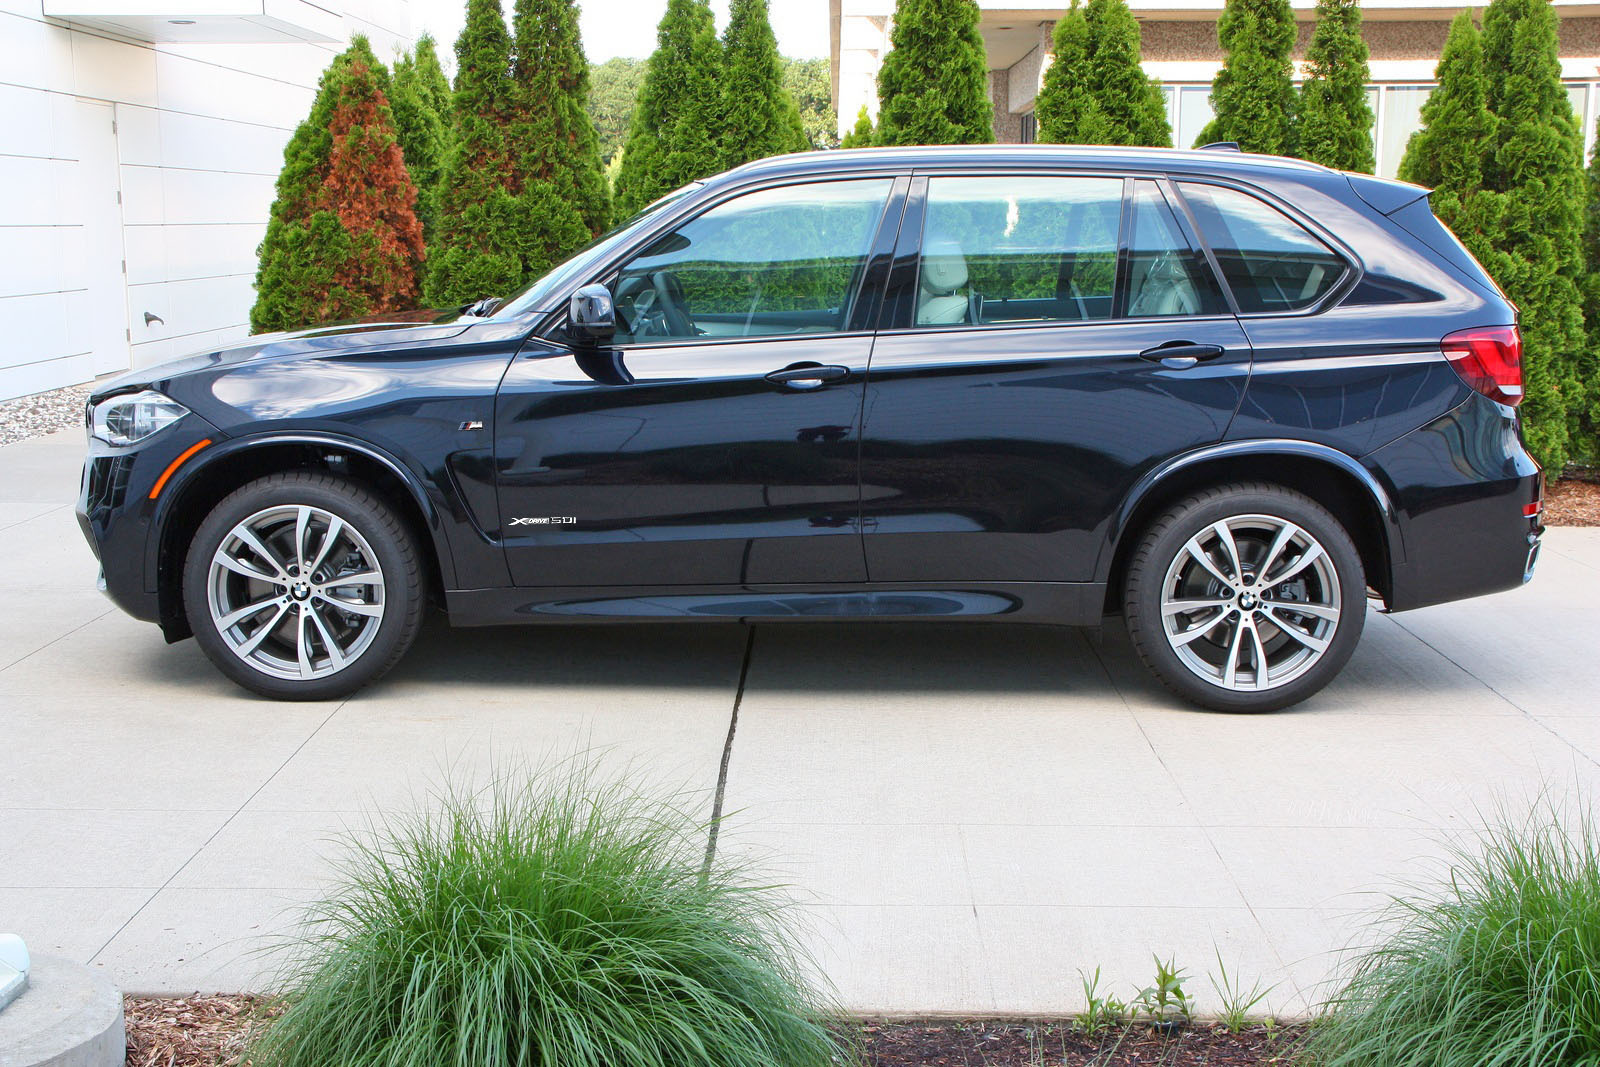 F15 2014 BMW X5 50i M-Sport Uncovered - BMW Markham